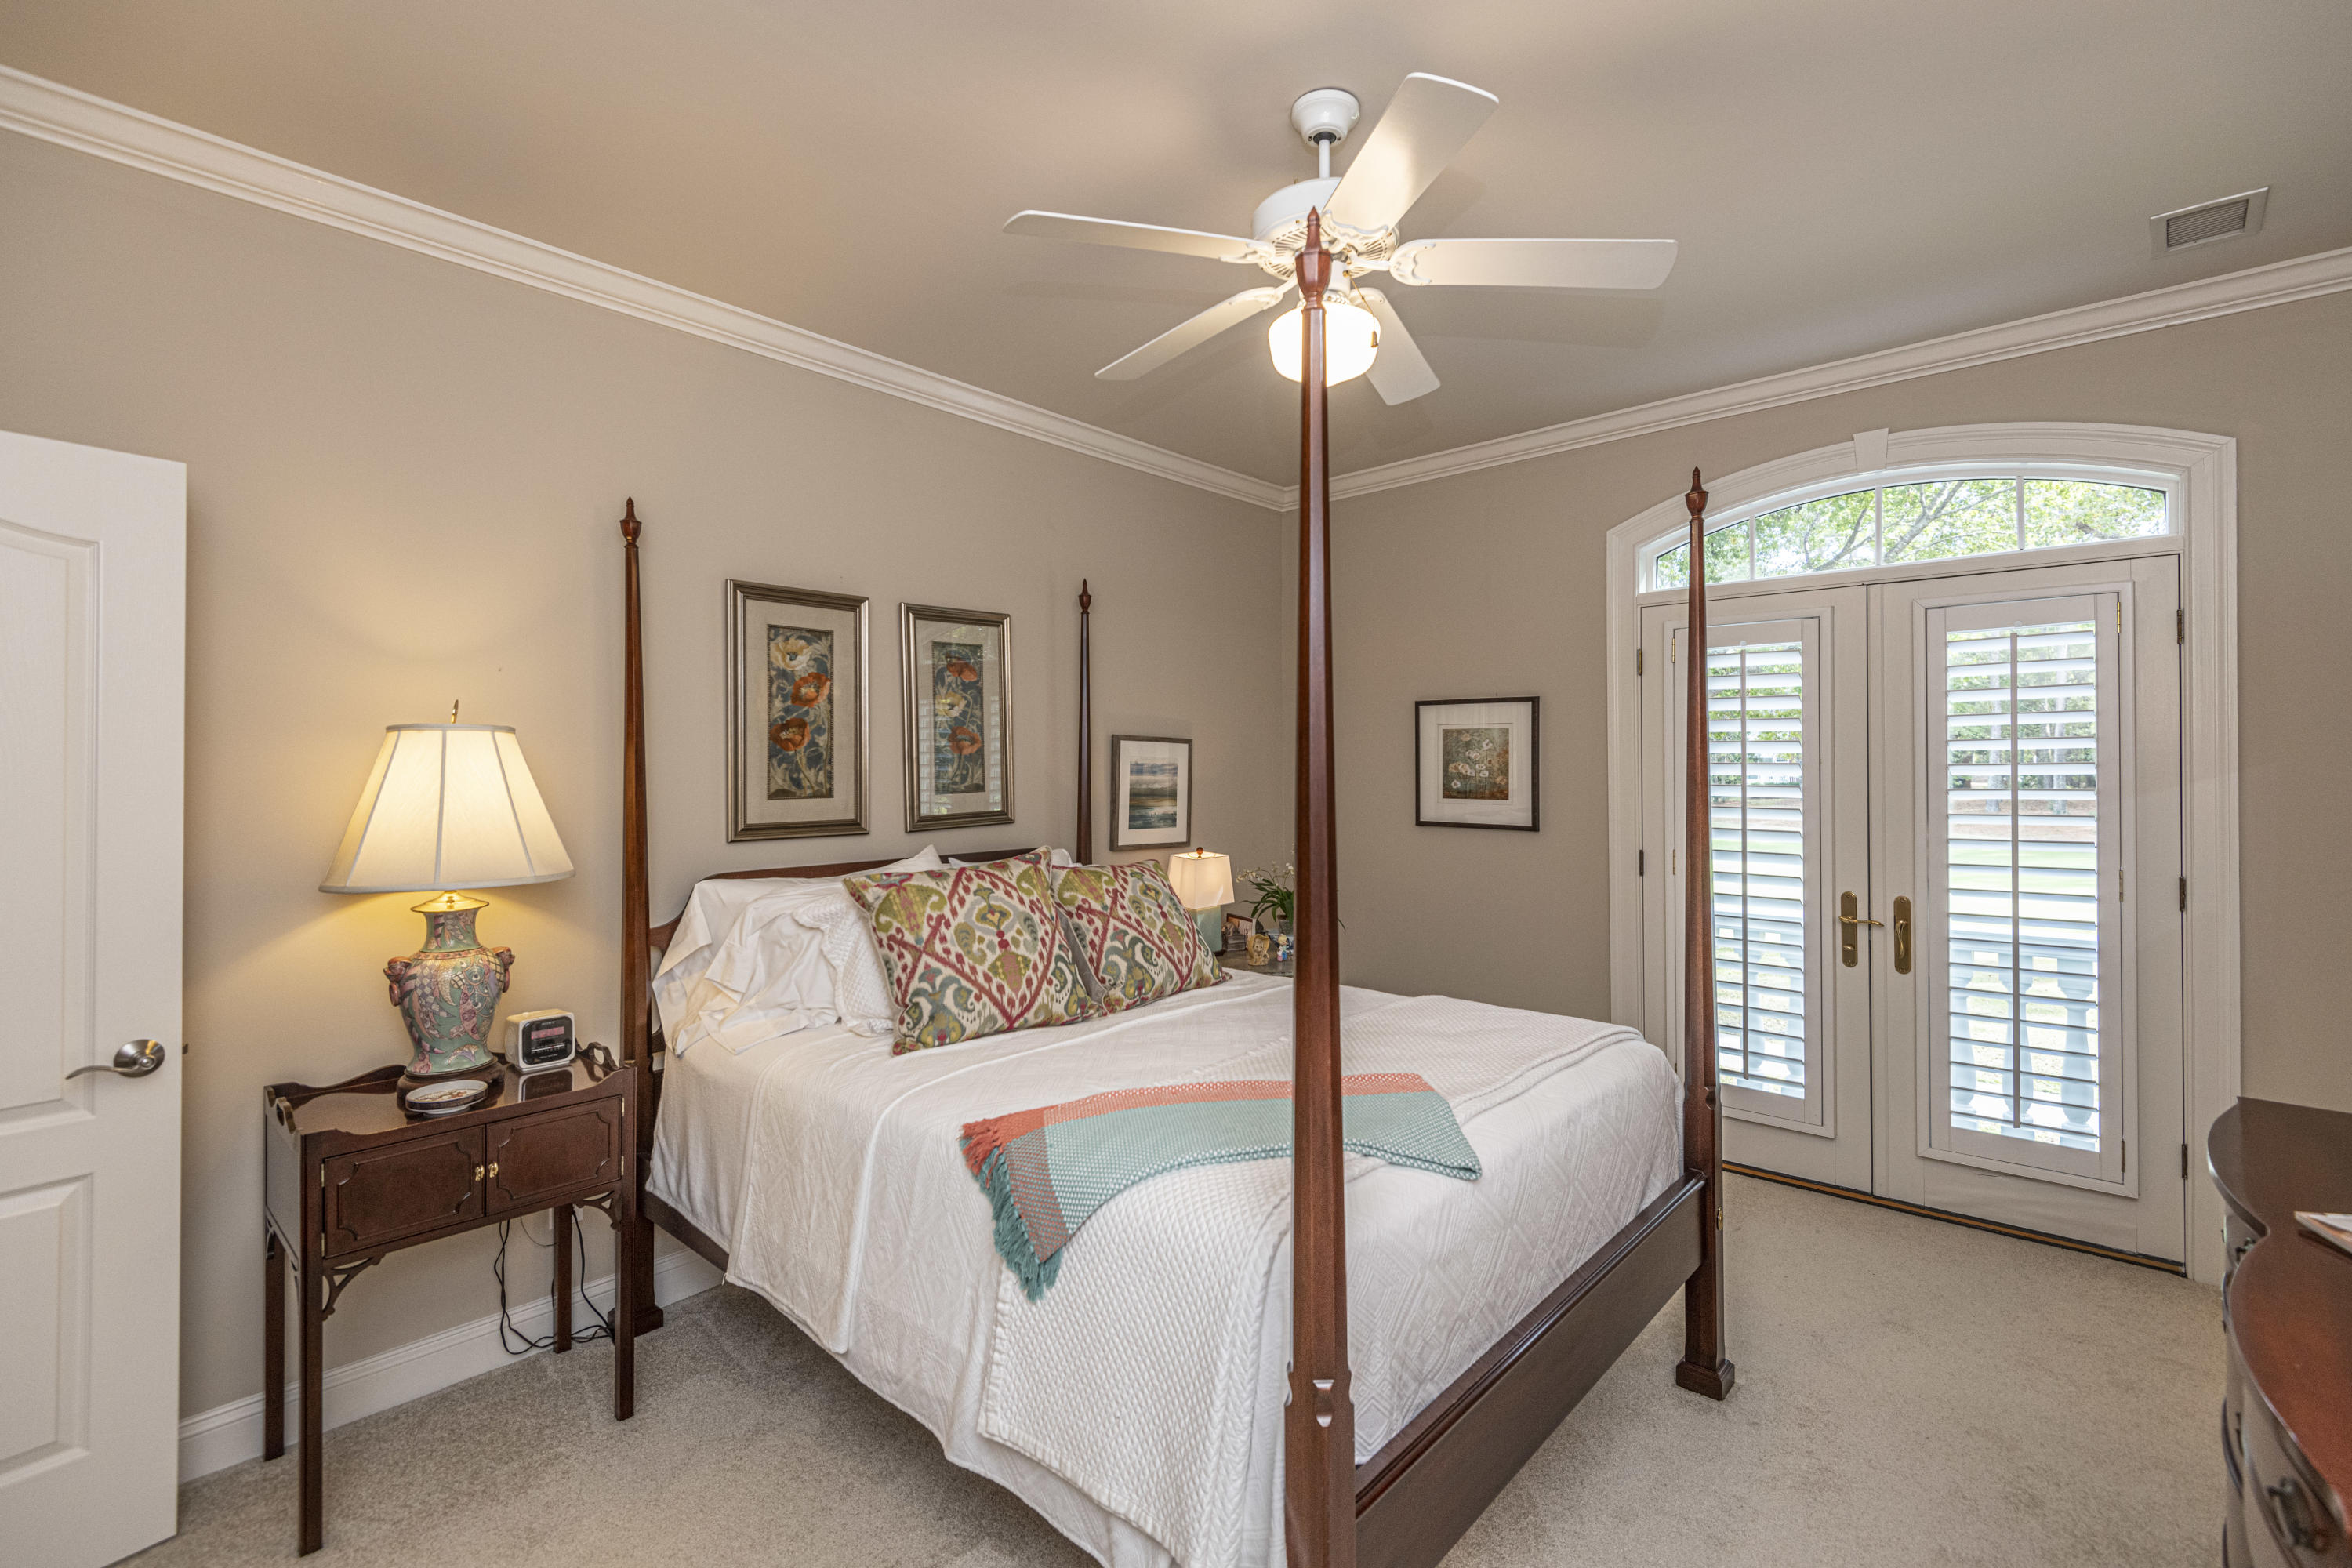 Coosaw Creek Country Club Homes For Sale - 8642 Fairway Woods, North Charleston, SC - 60